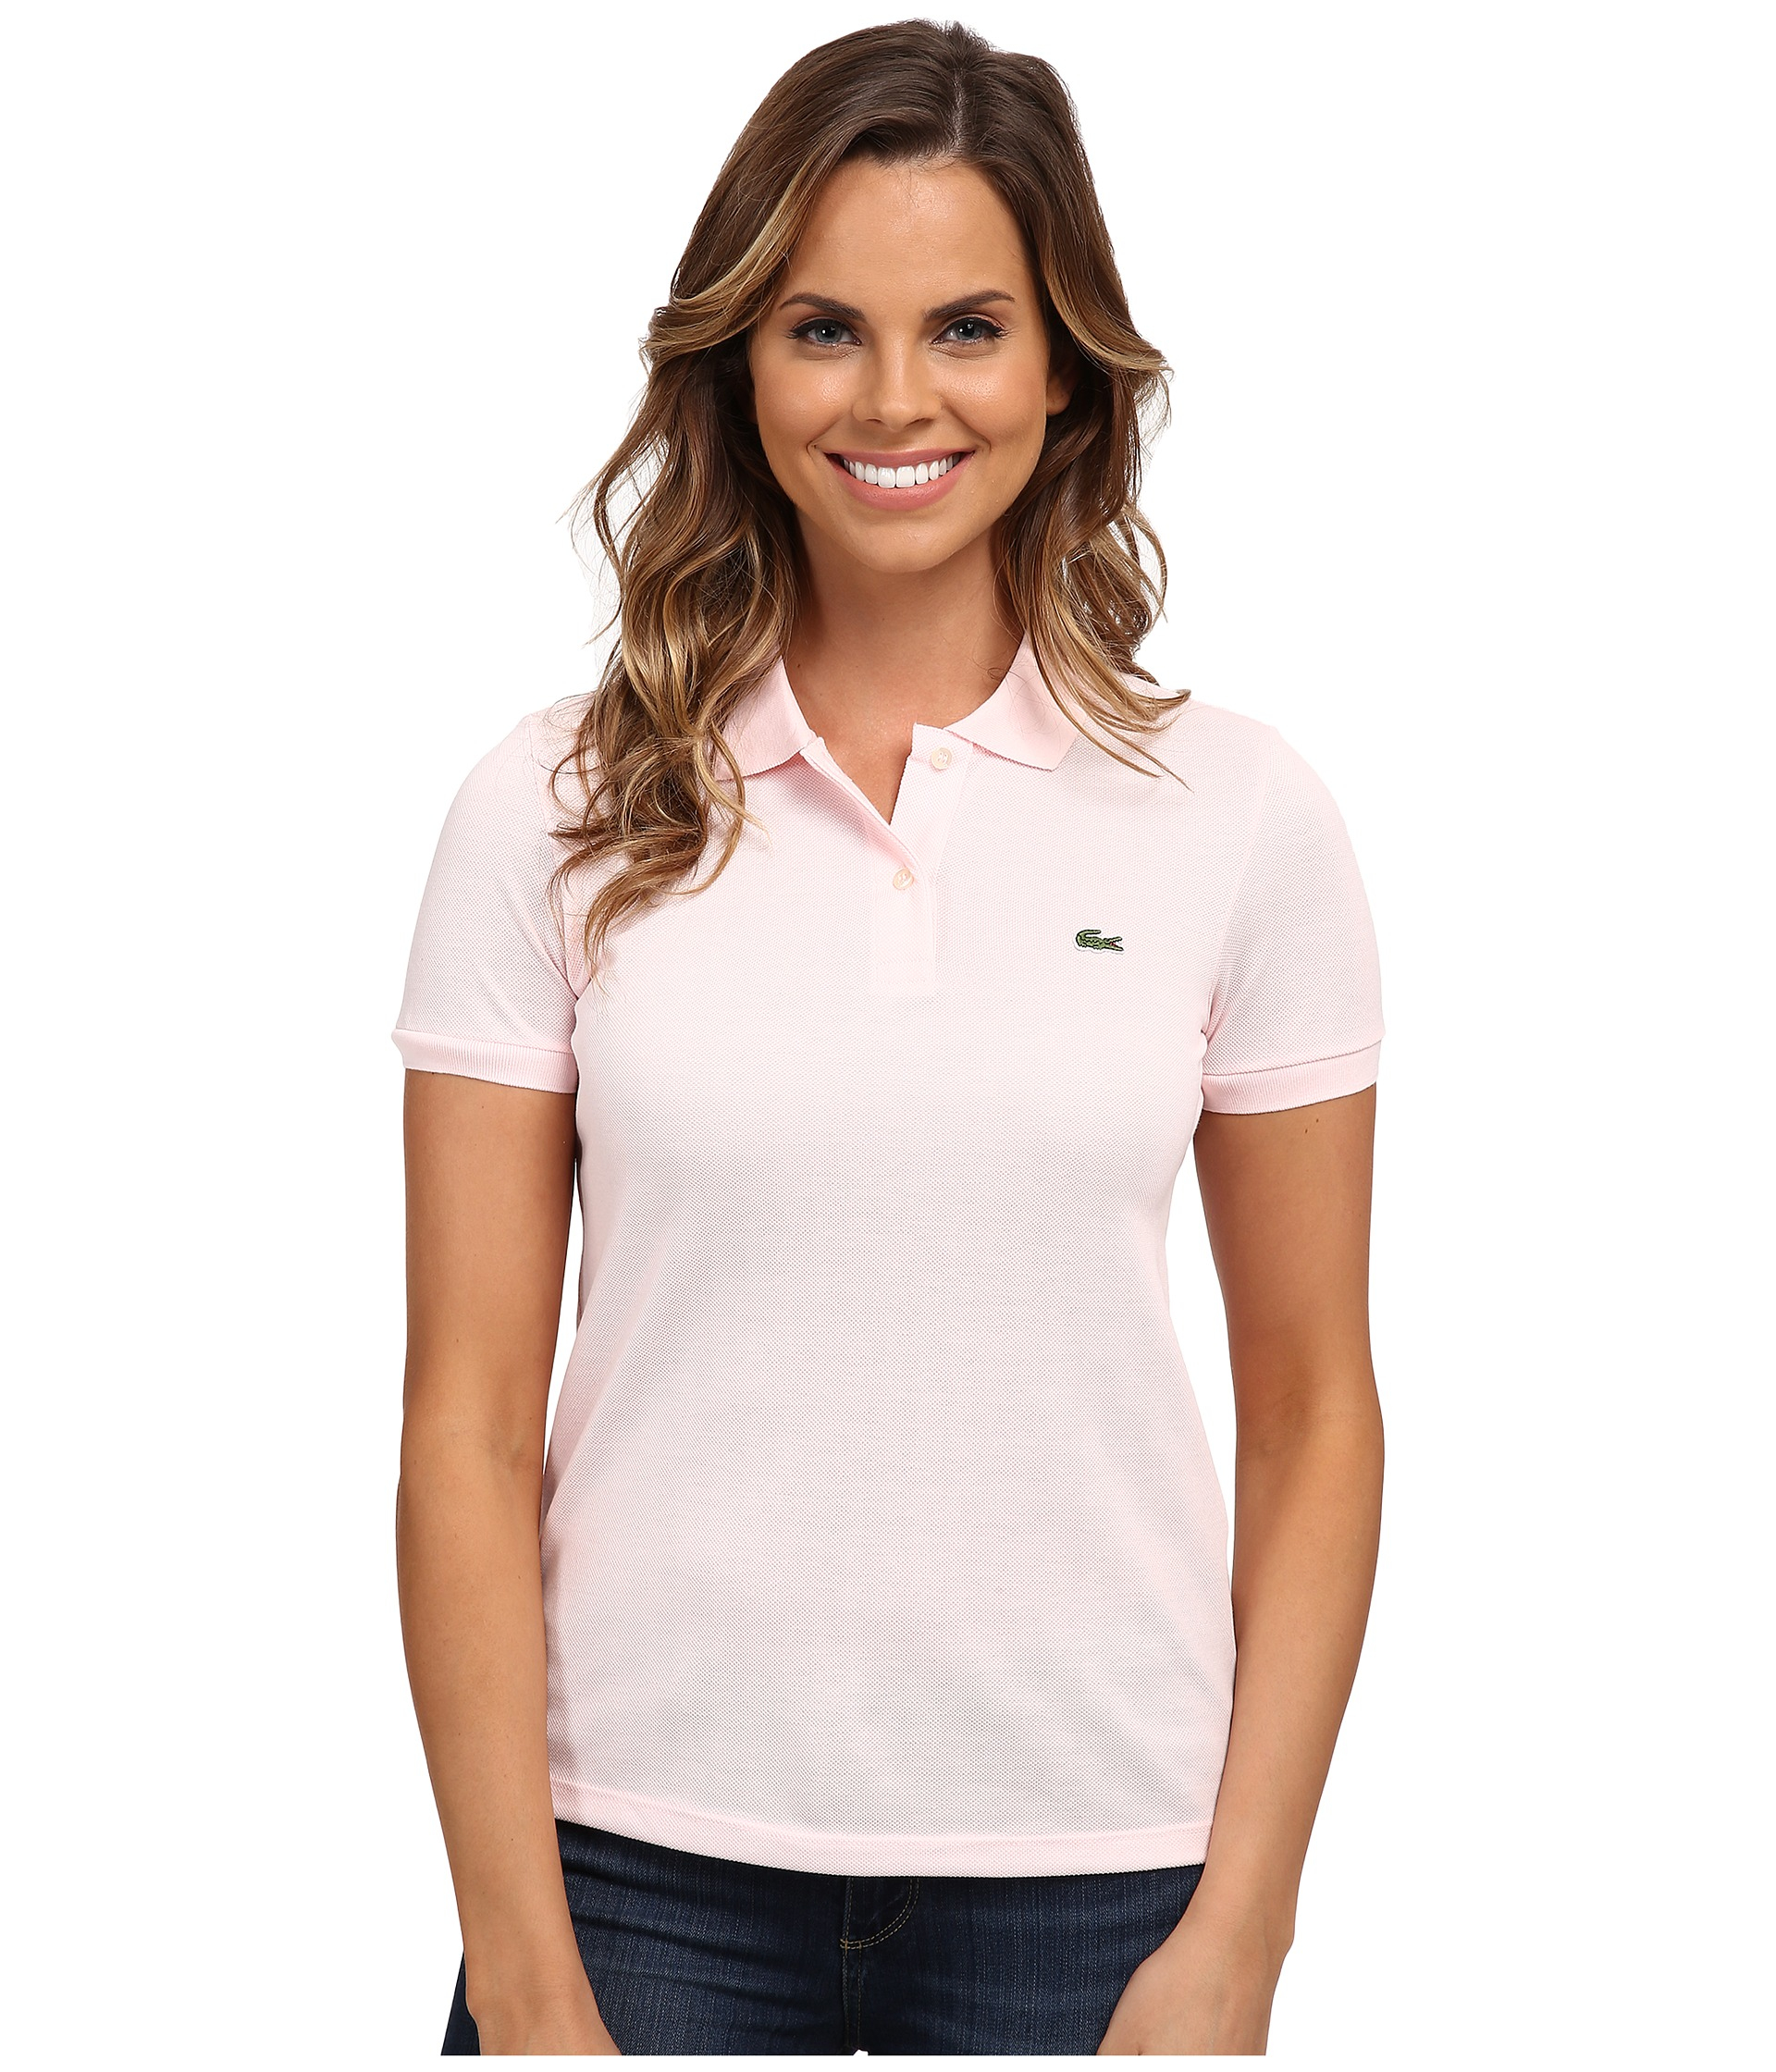 Lacoste short sleeve classic fit pique polo shirt in pink for Short sleeve lacoste shirt